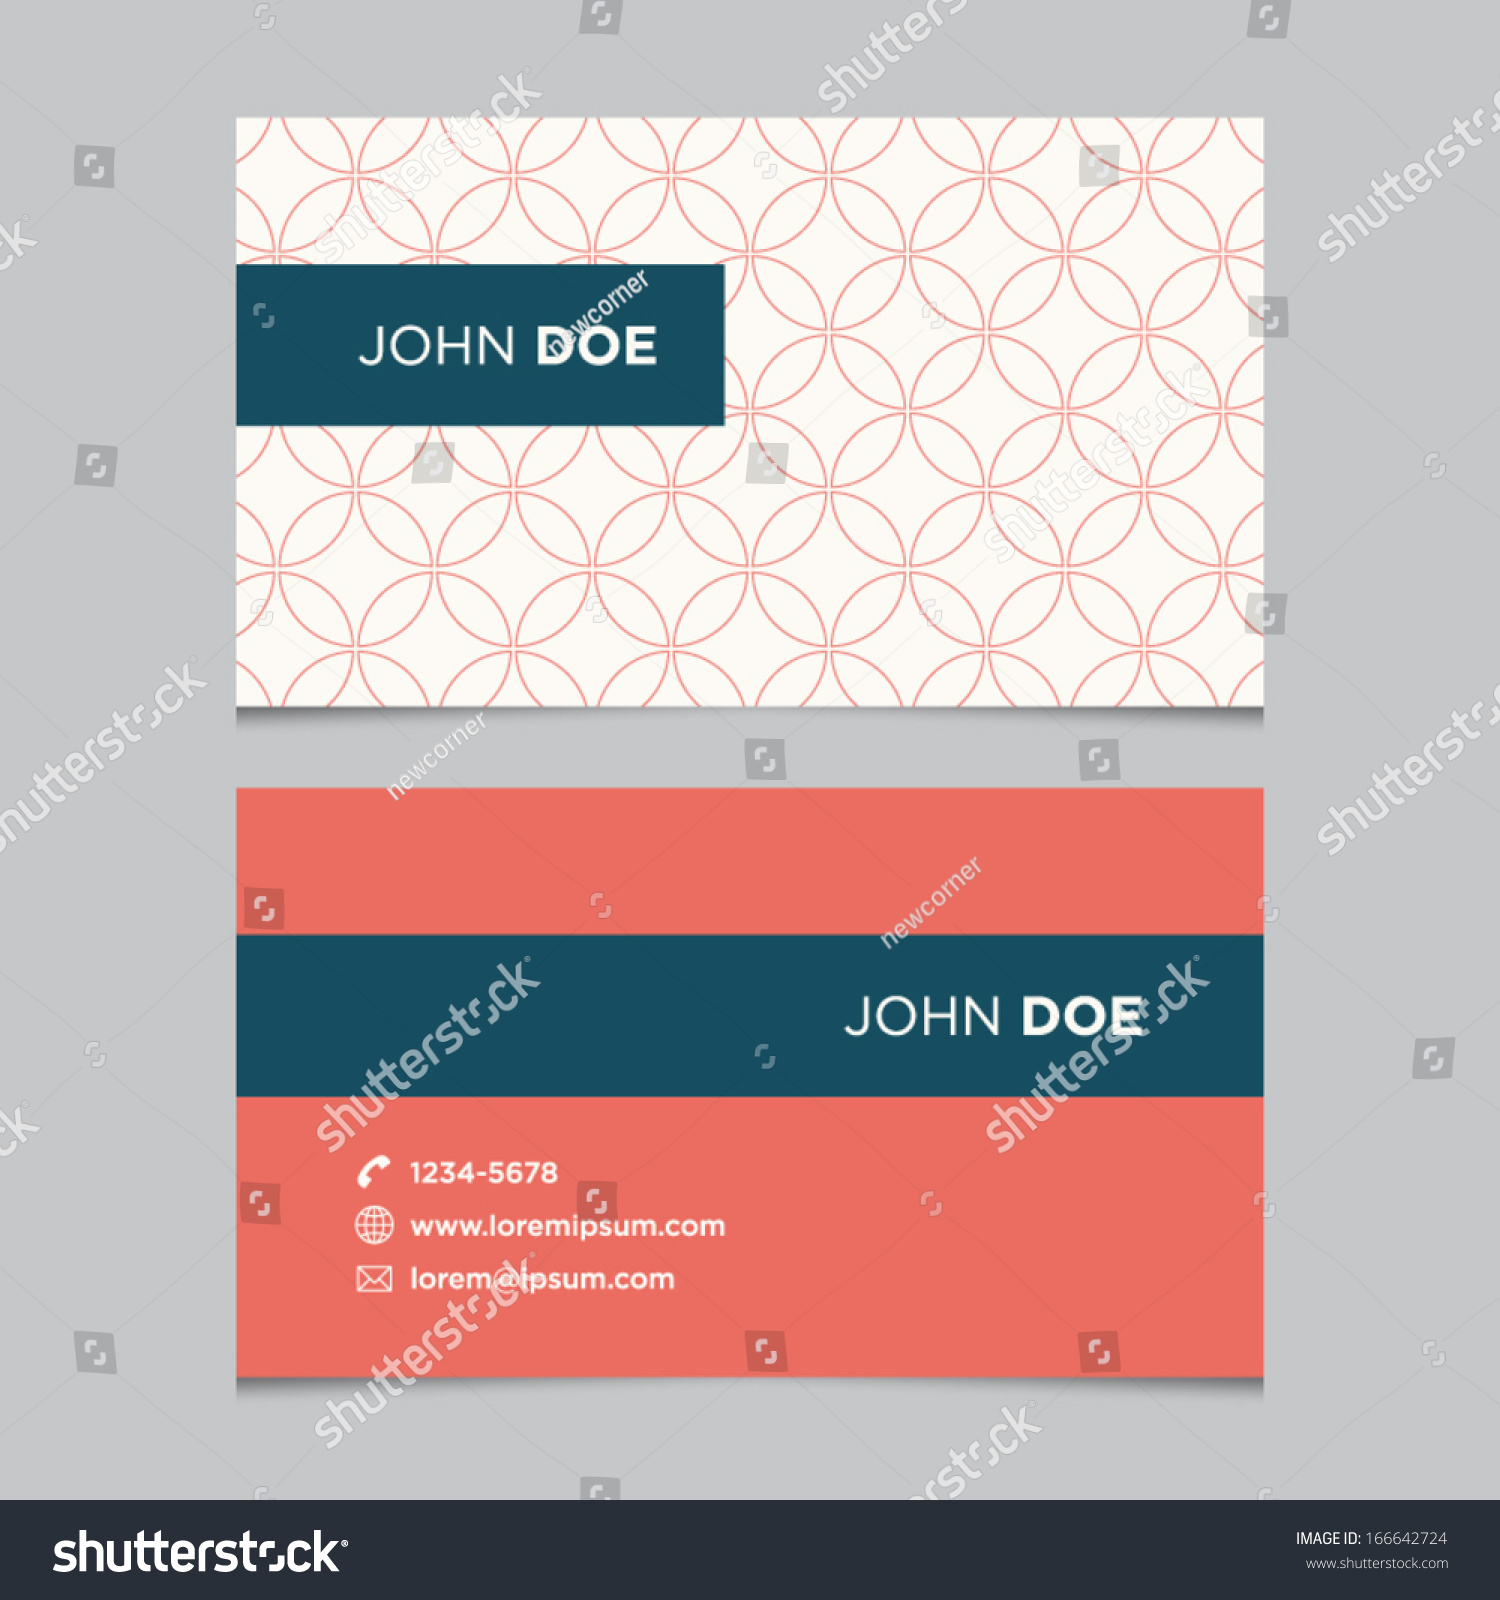 Inspirational Pics Of Chevron Business Card – Business Cards and ...